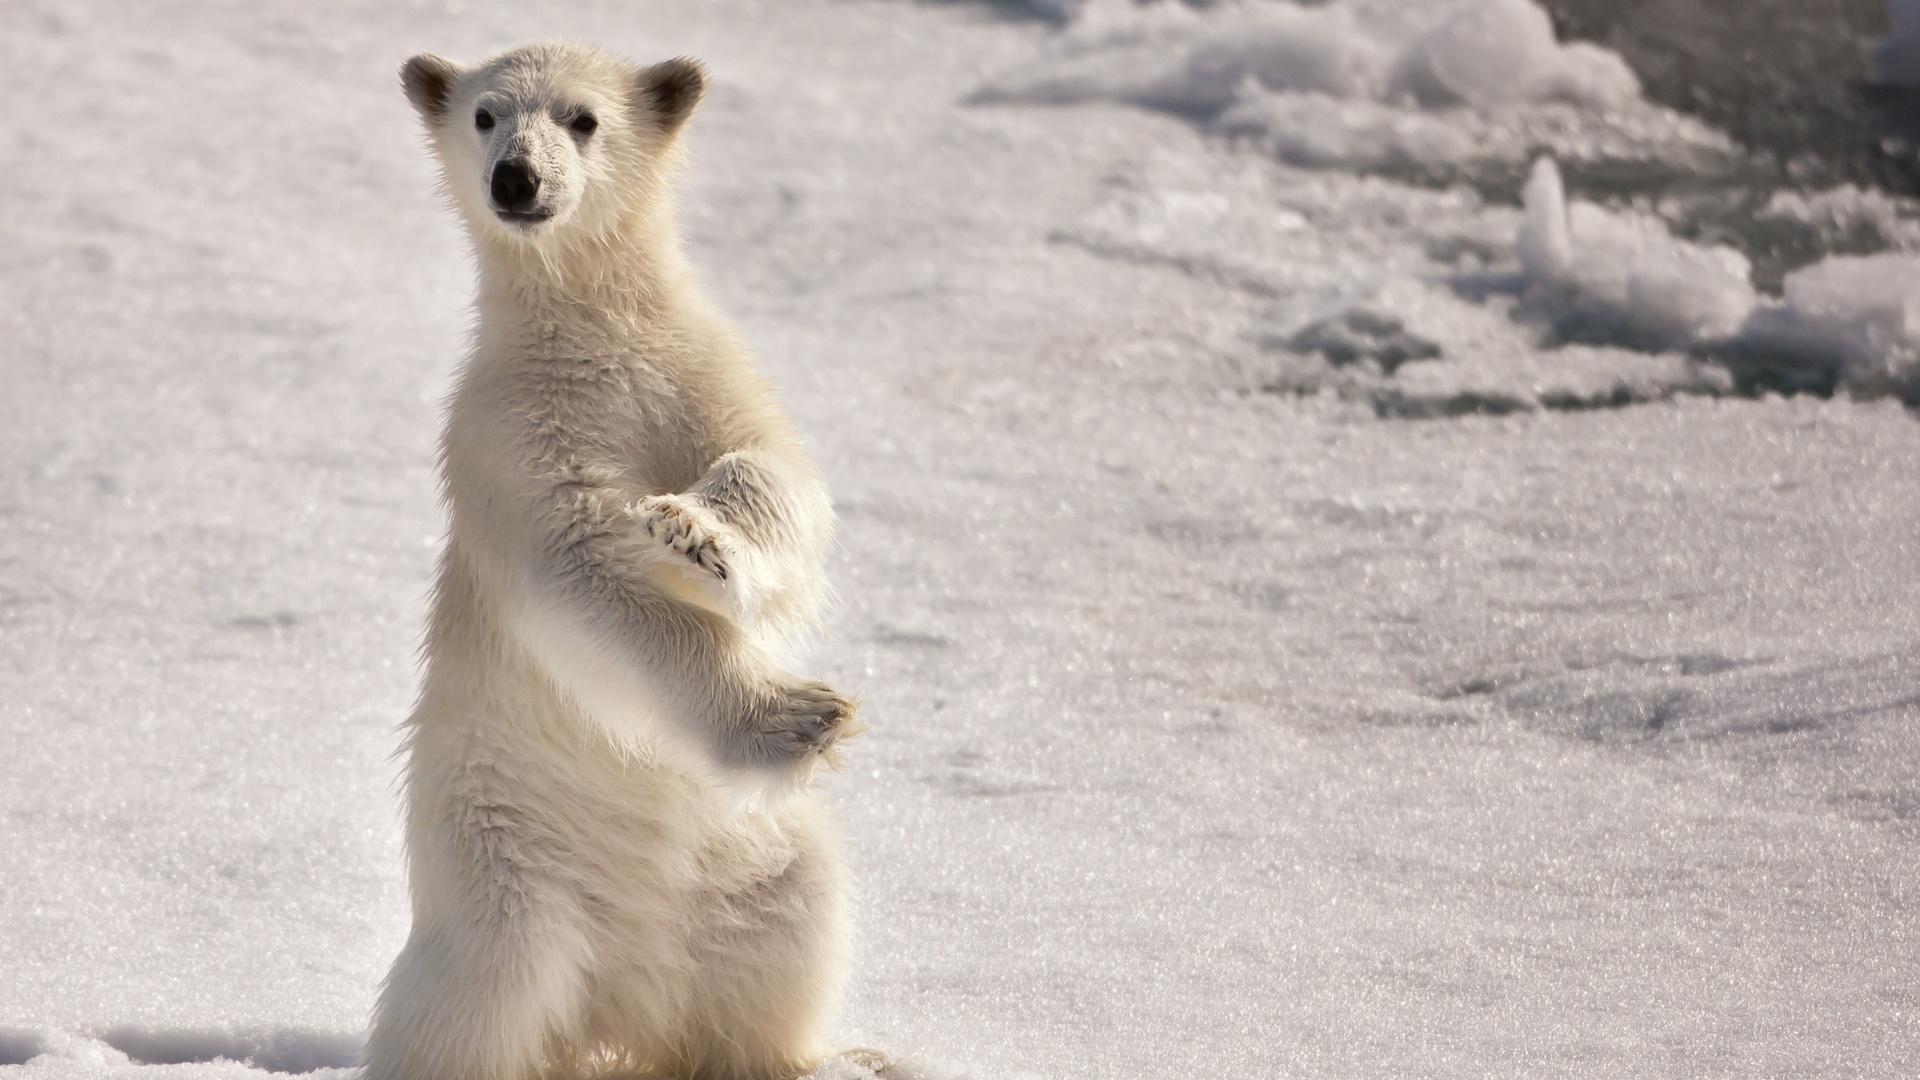 38274 download wallpaper Animals, Bears screensavers and pictures for free